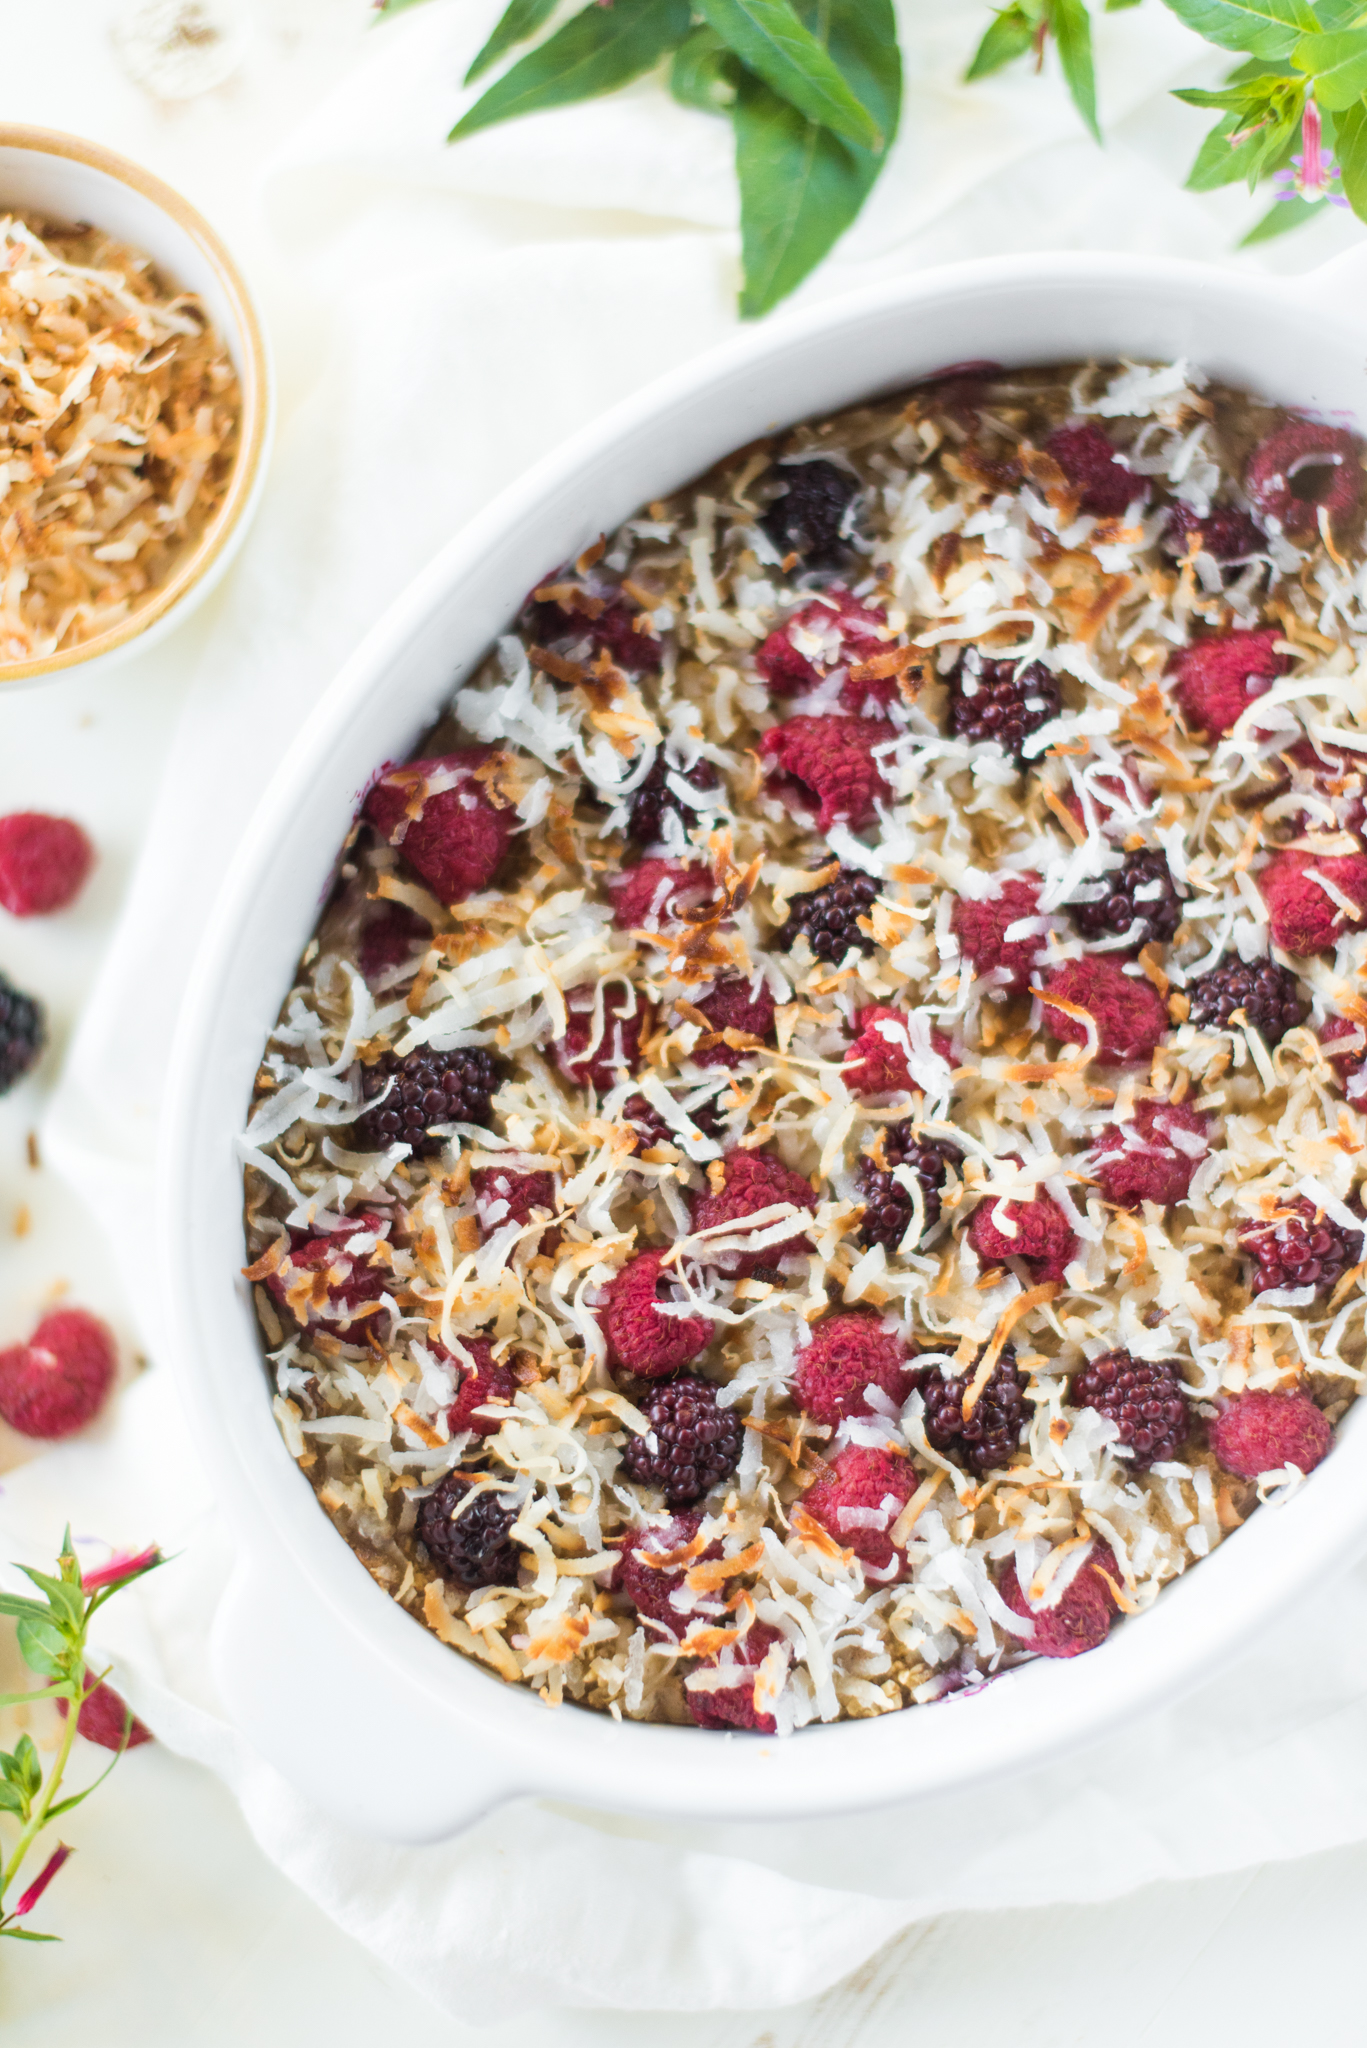 Coconut Berry Oatmeal Bake- delicious, healthy, and done from start to finish in just 30 minutes! Meal prep once for a healthy and filling breakfast all week long!